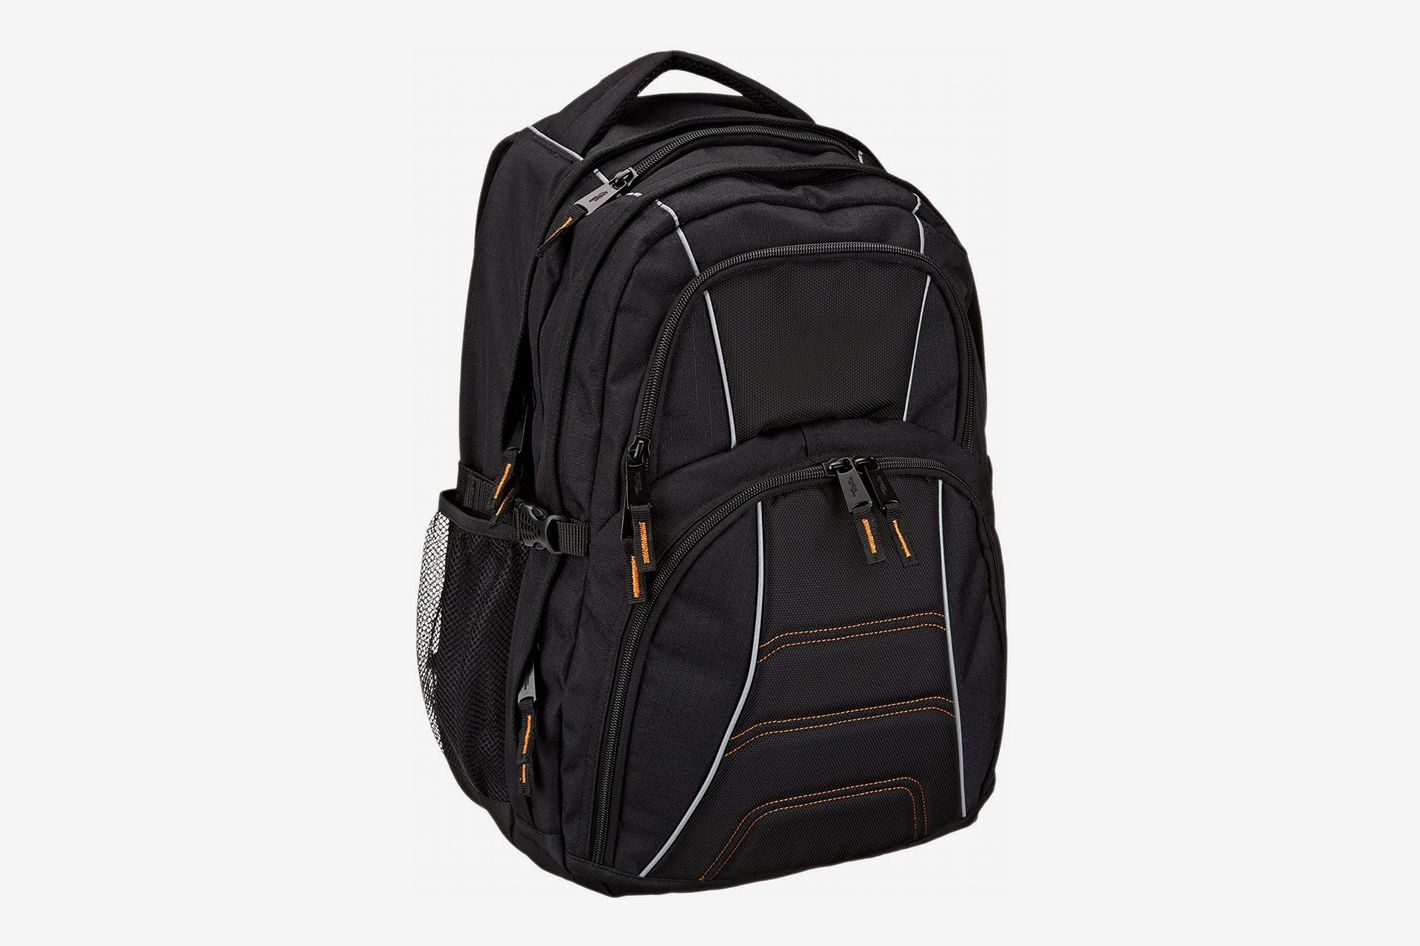 "cc717d260ae4 AmazonBasics Laptop Backpack (Fits 17"" Laptop)"